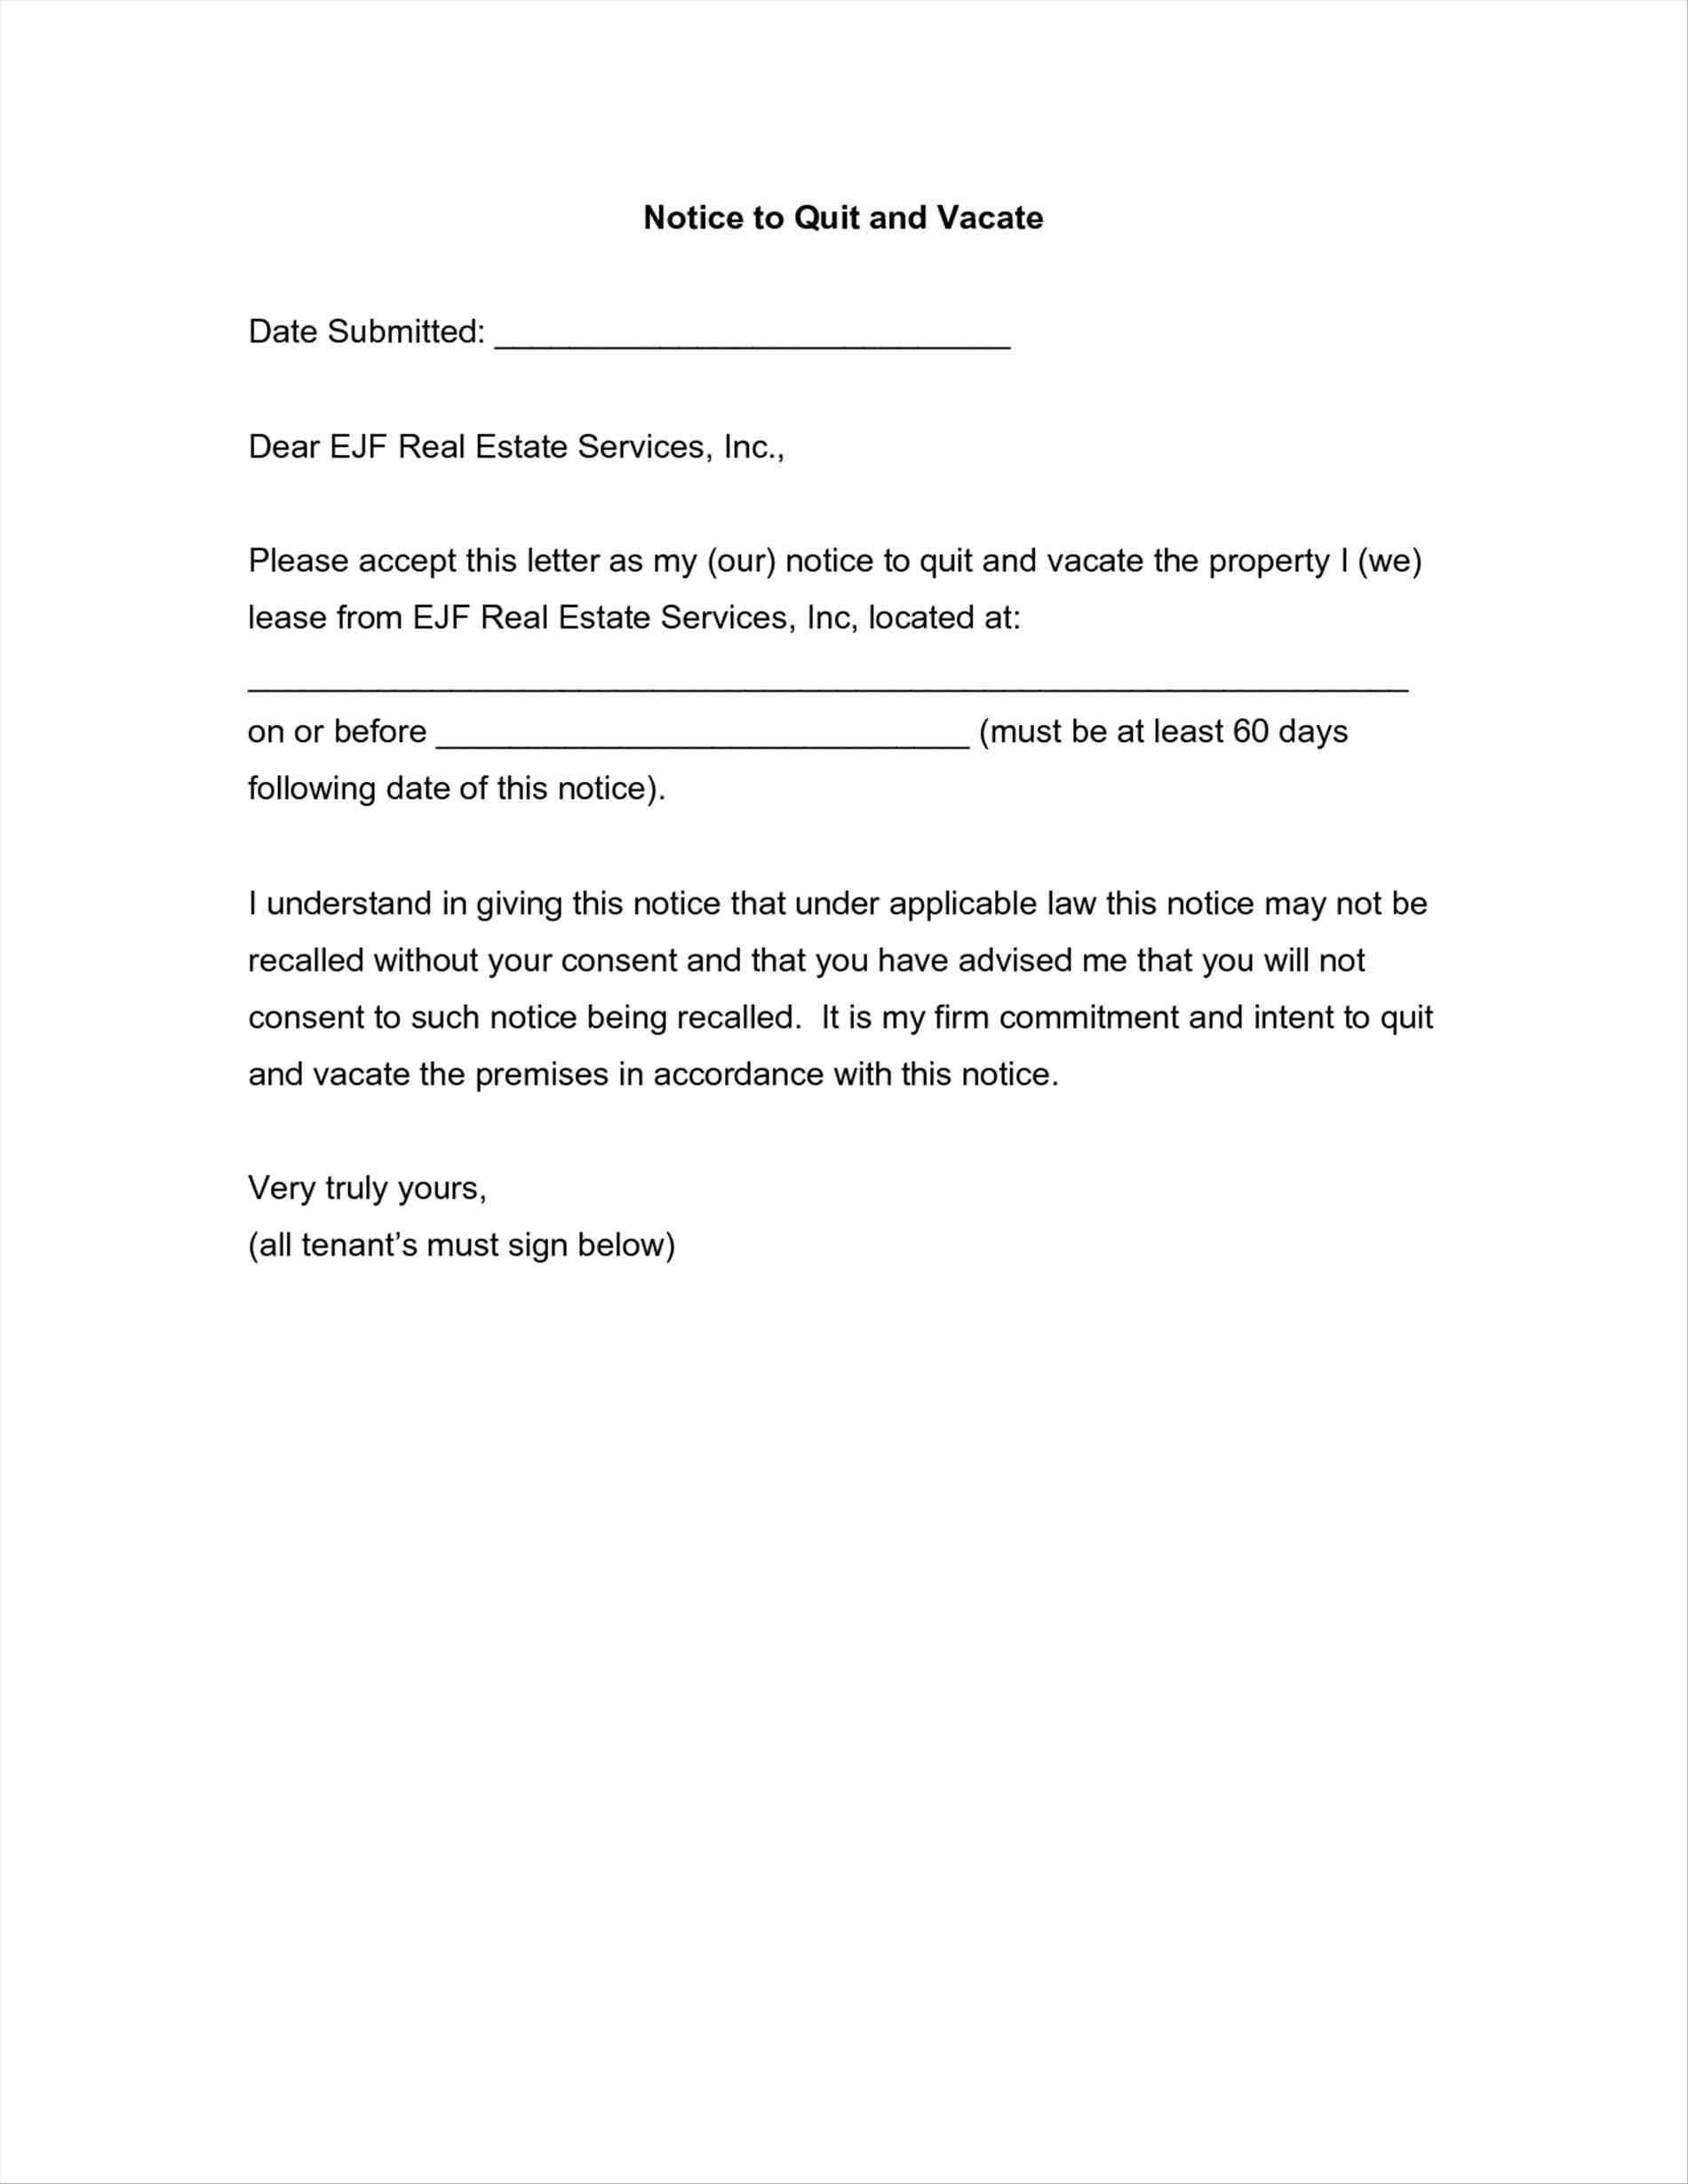 notice to vacate apartment letter template example-Letter Template For Giving Notice Flat New Pretty 60 Day 9-a